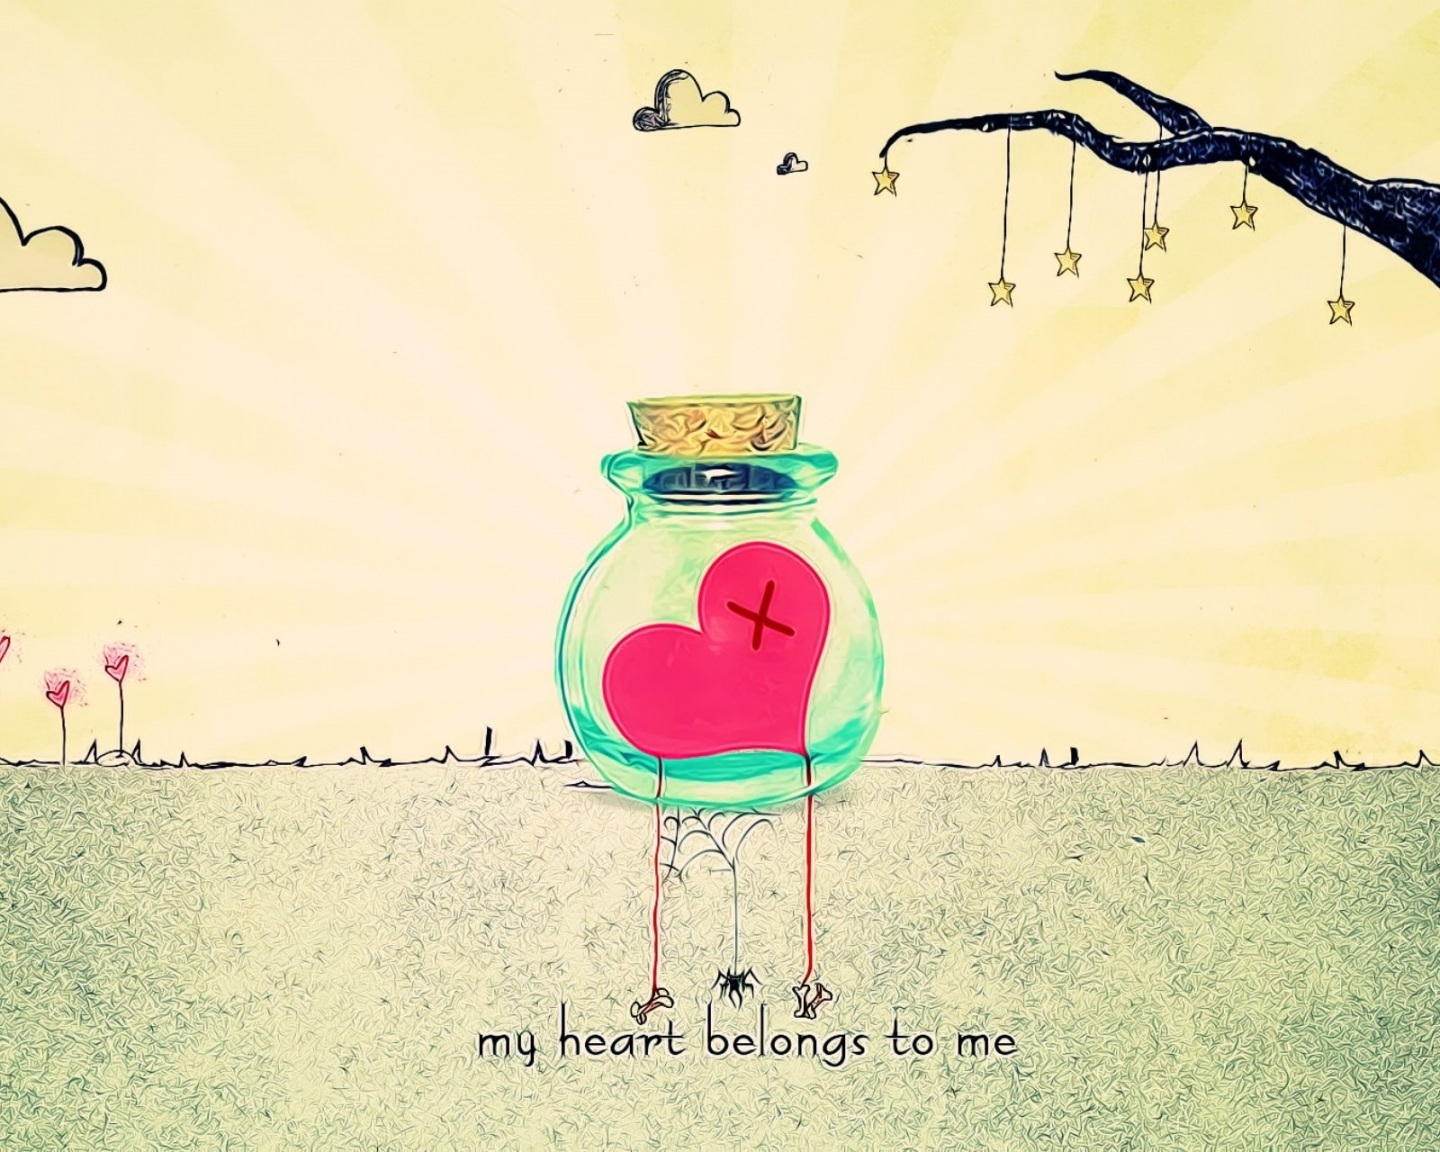 Cute Love Wallpapers For Mobile: Cute J Wallpapers